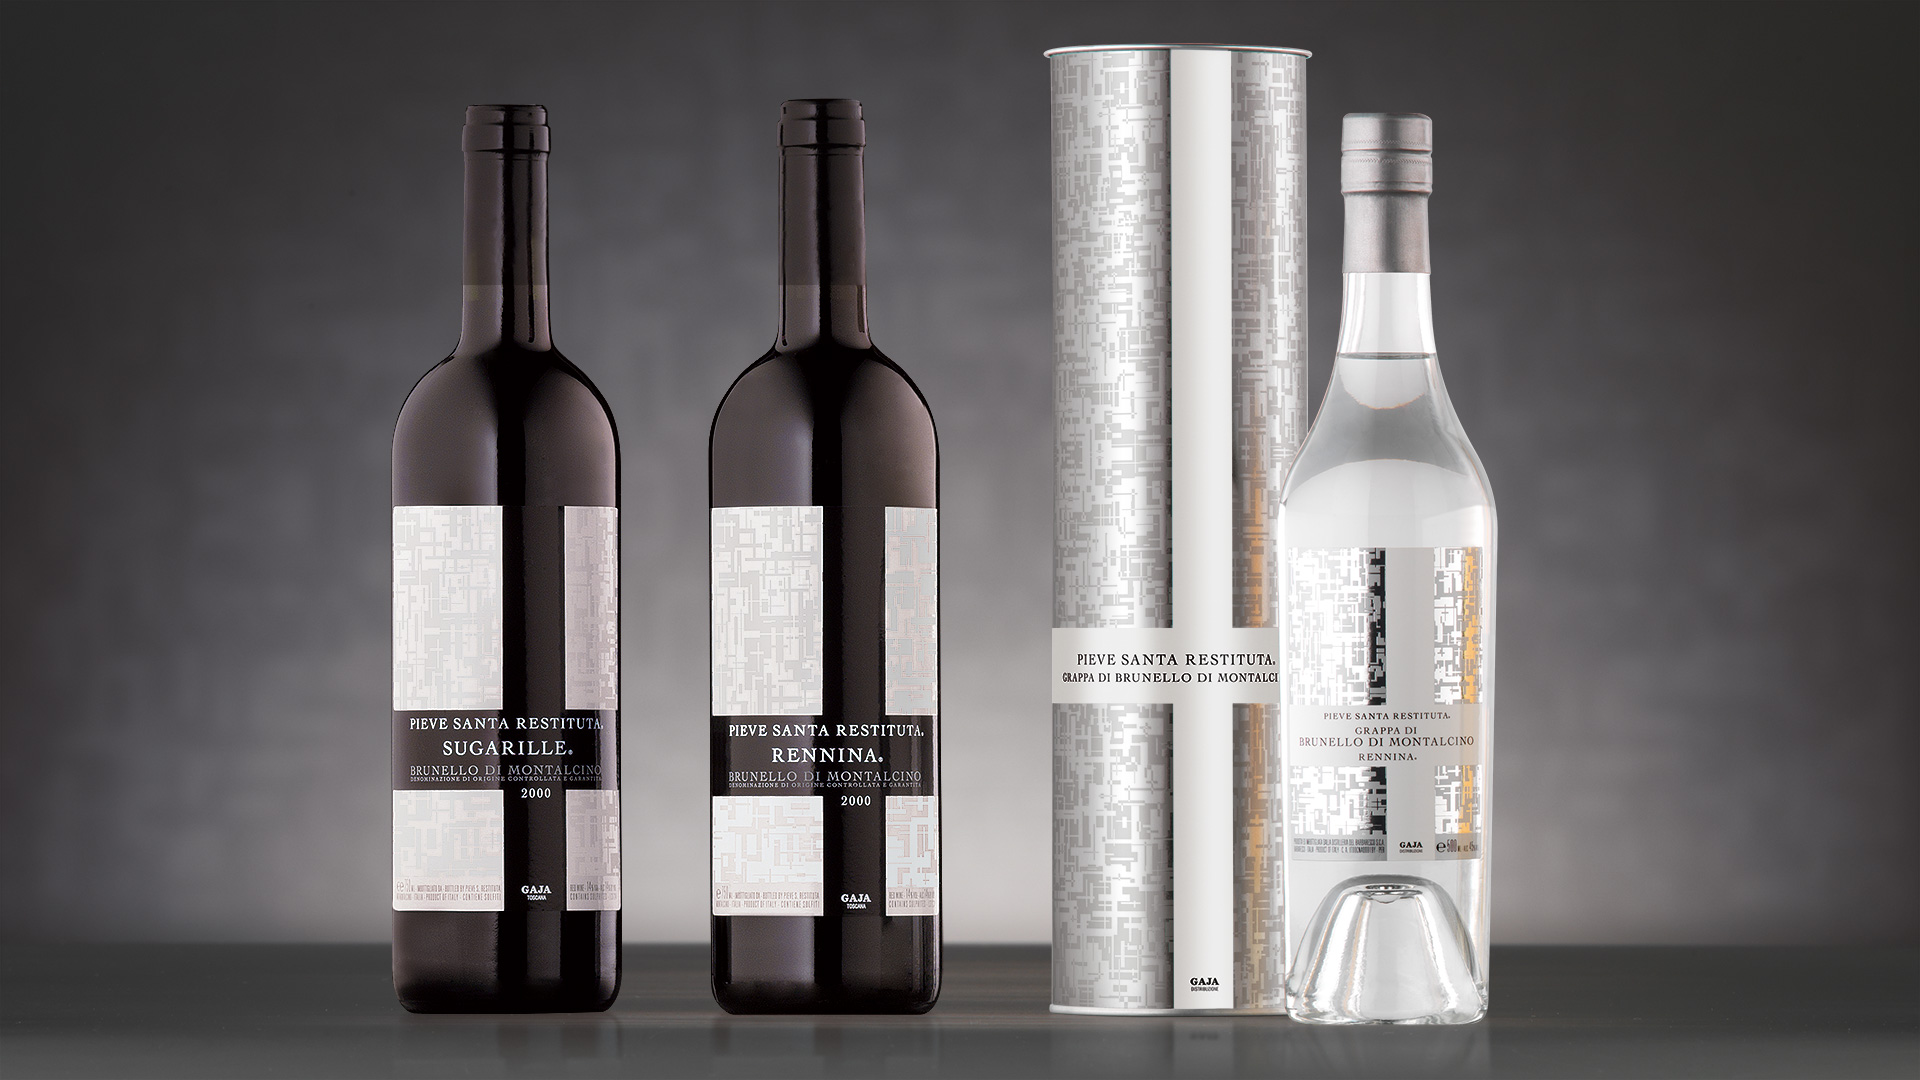 Gaja Santa Restituta vino grappa packaging